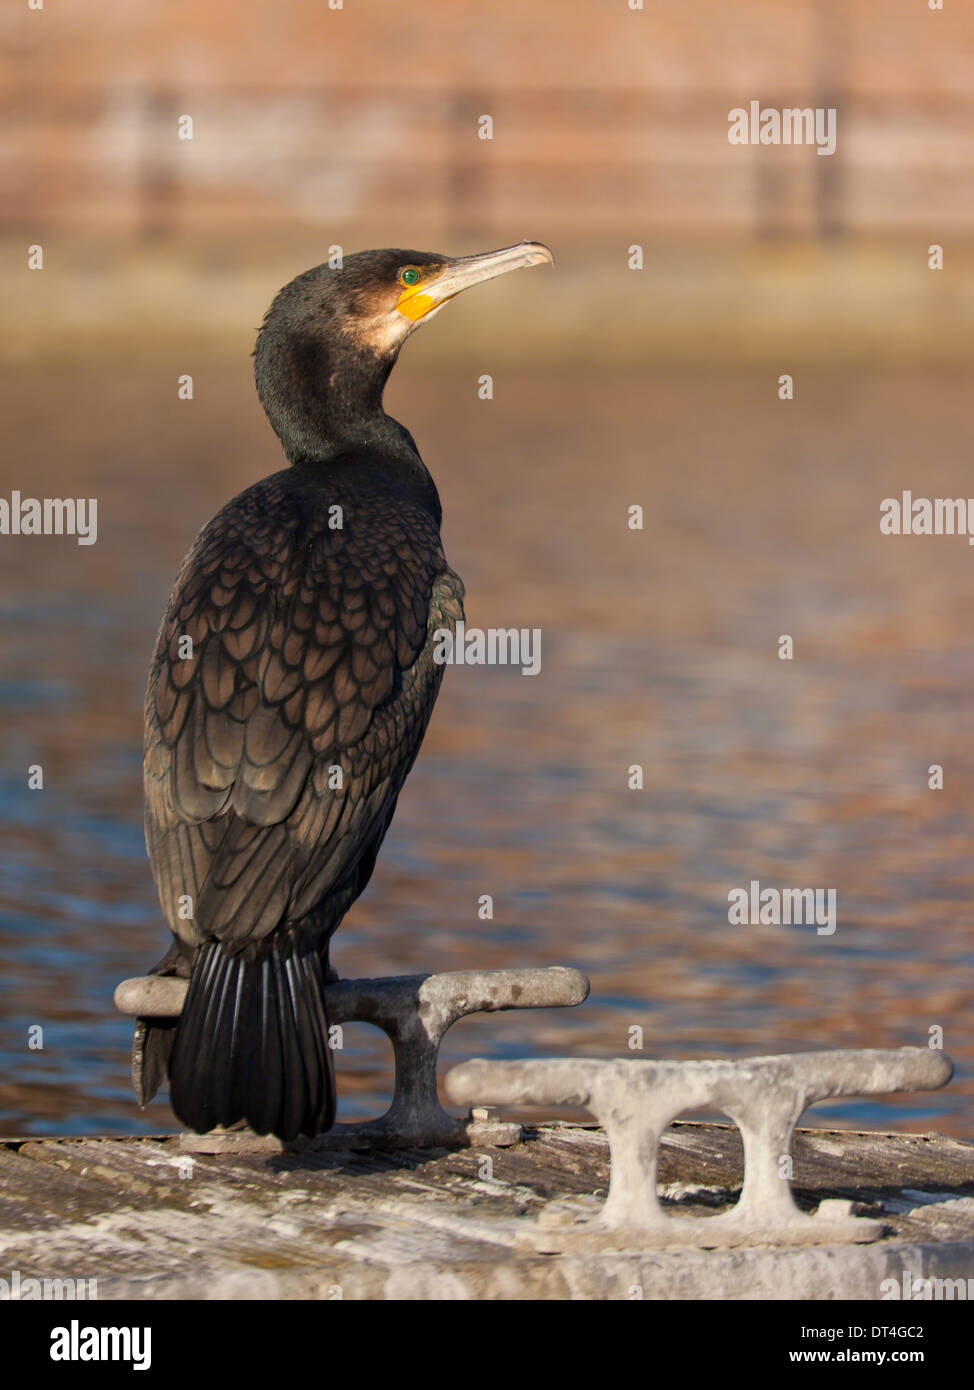 A cormorant sitting on a cleat on a pontoon in a marina - Stock Image